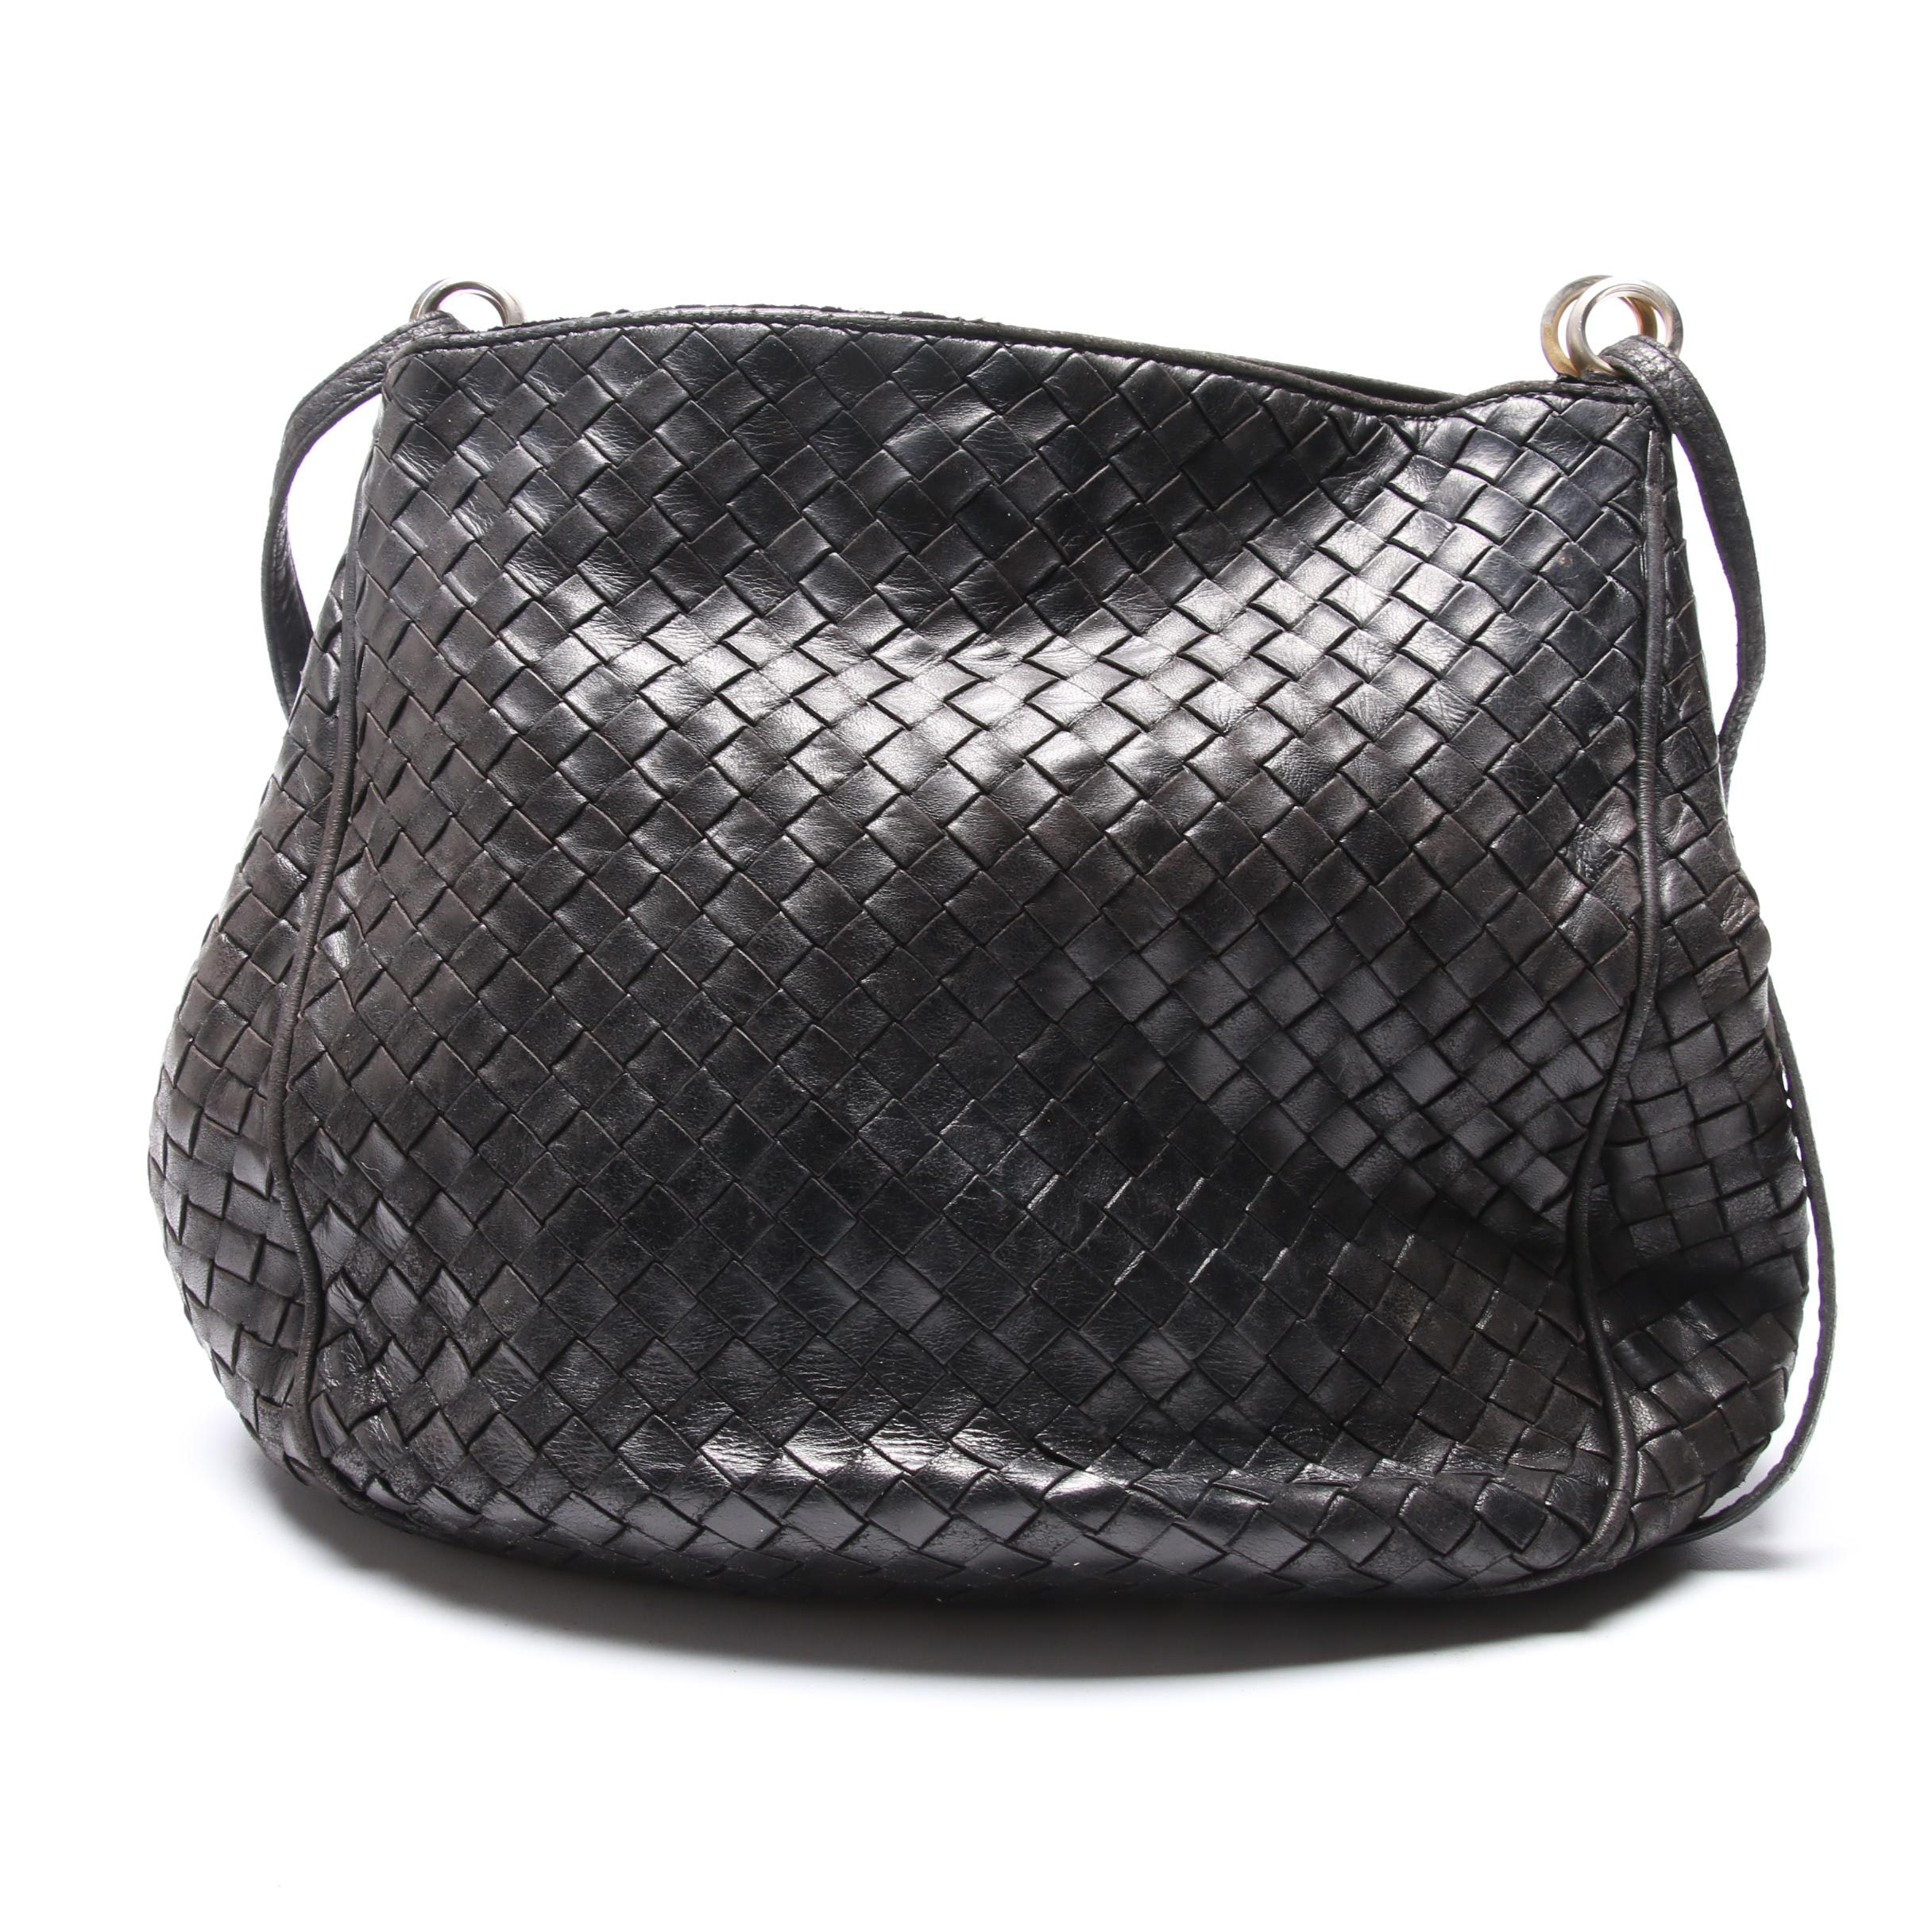 Bottega Veneta Intrecciato Woven Leather Handbag